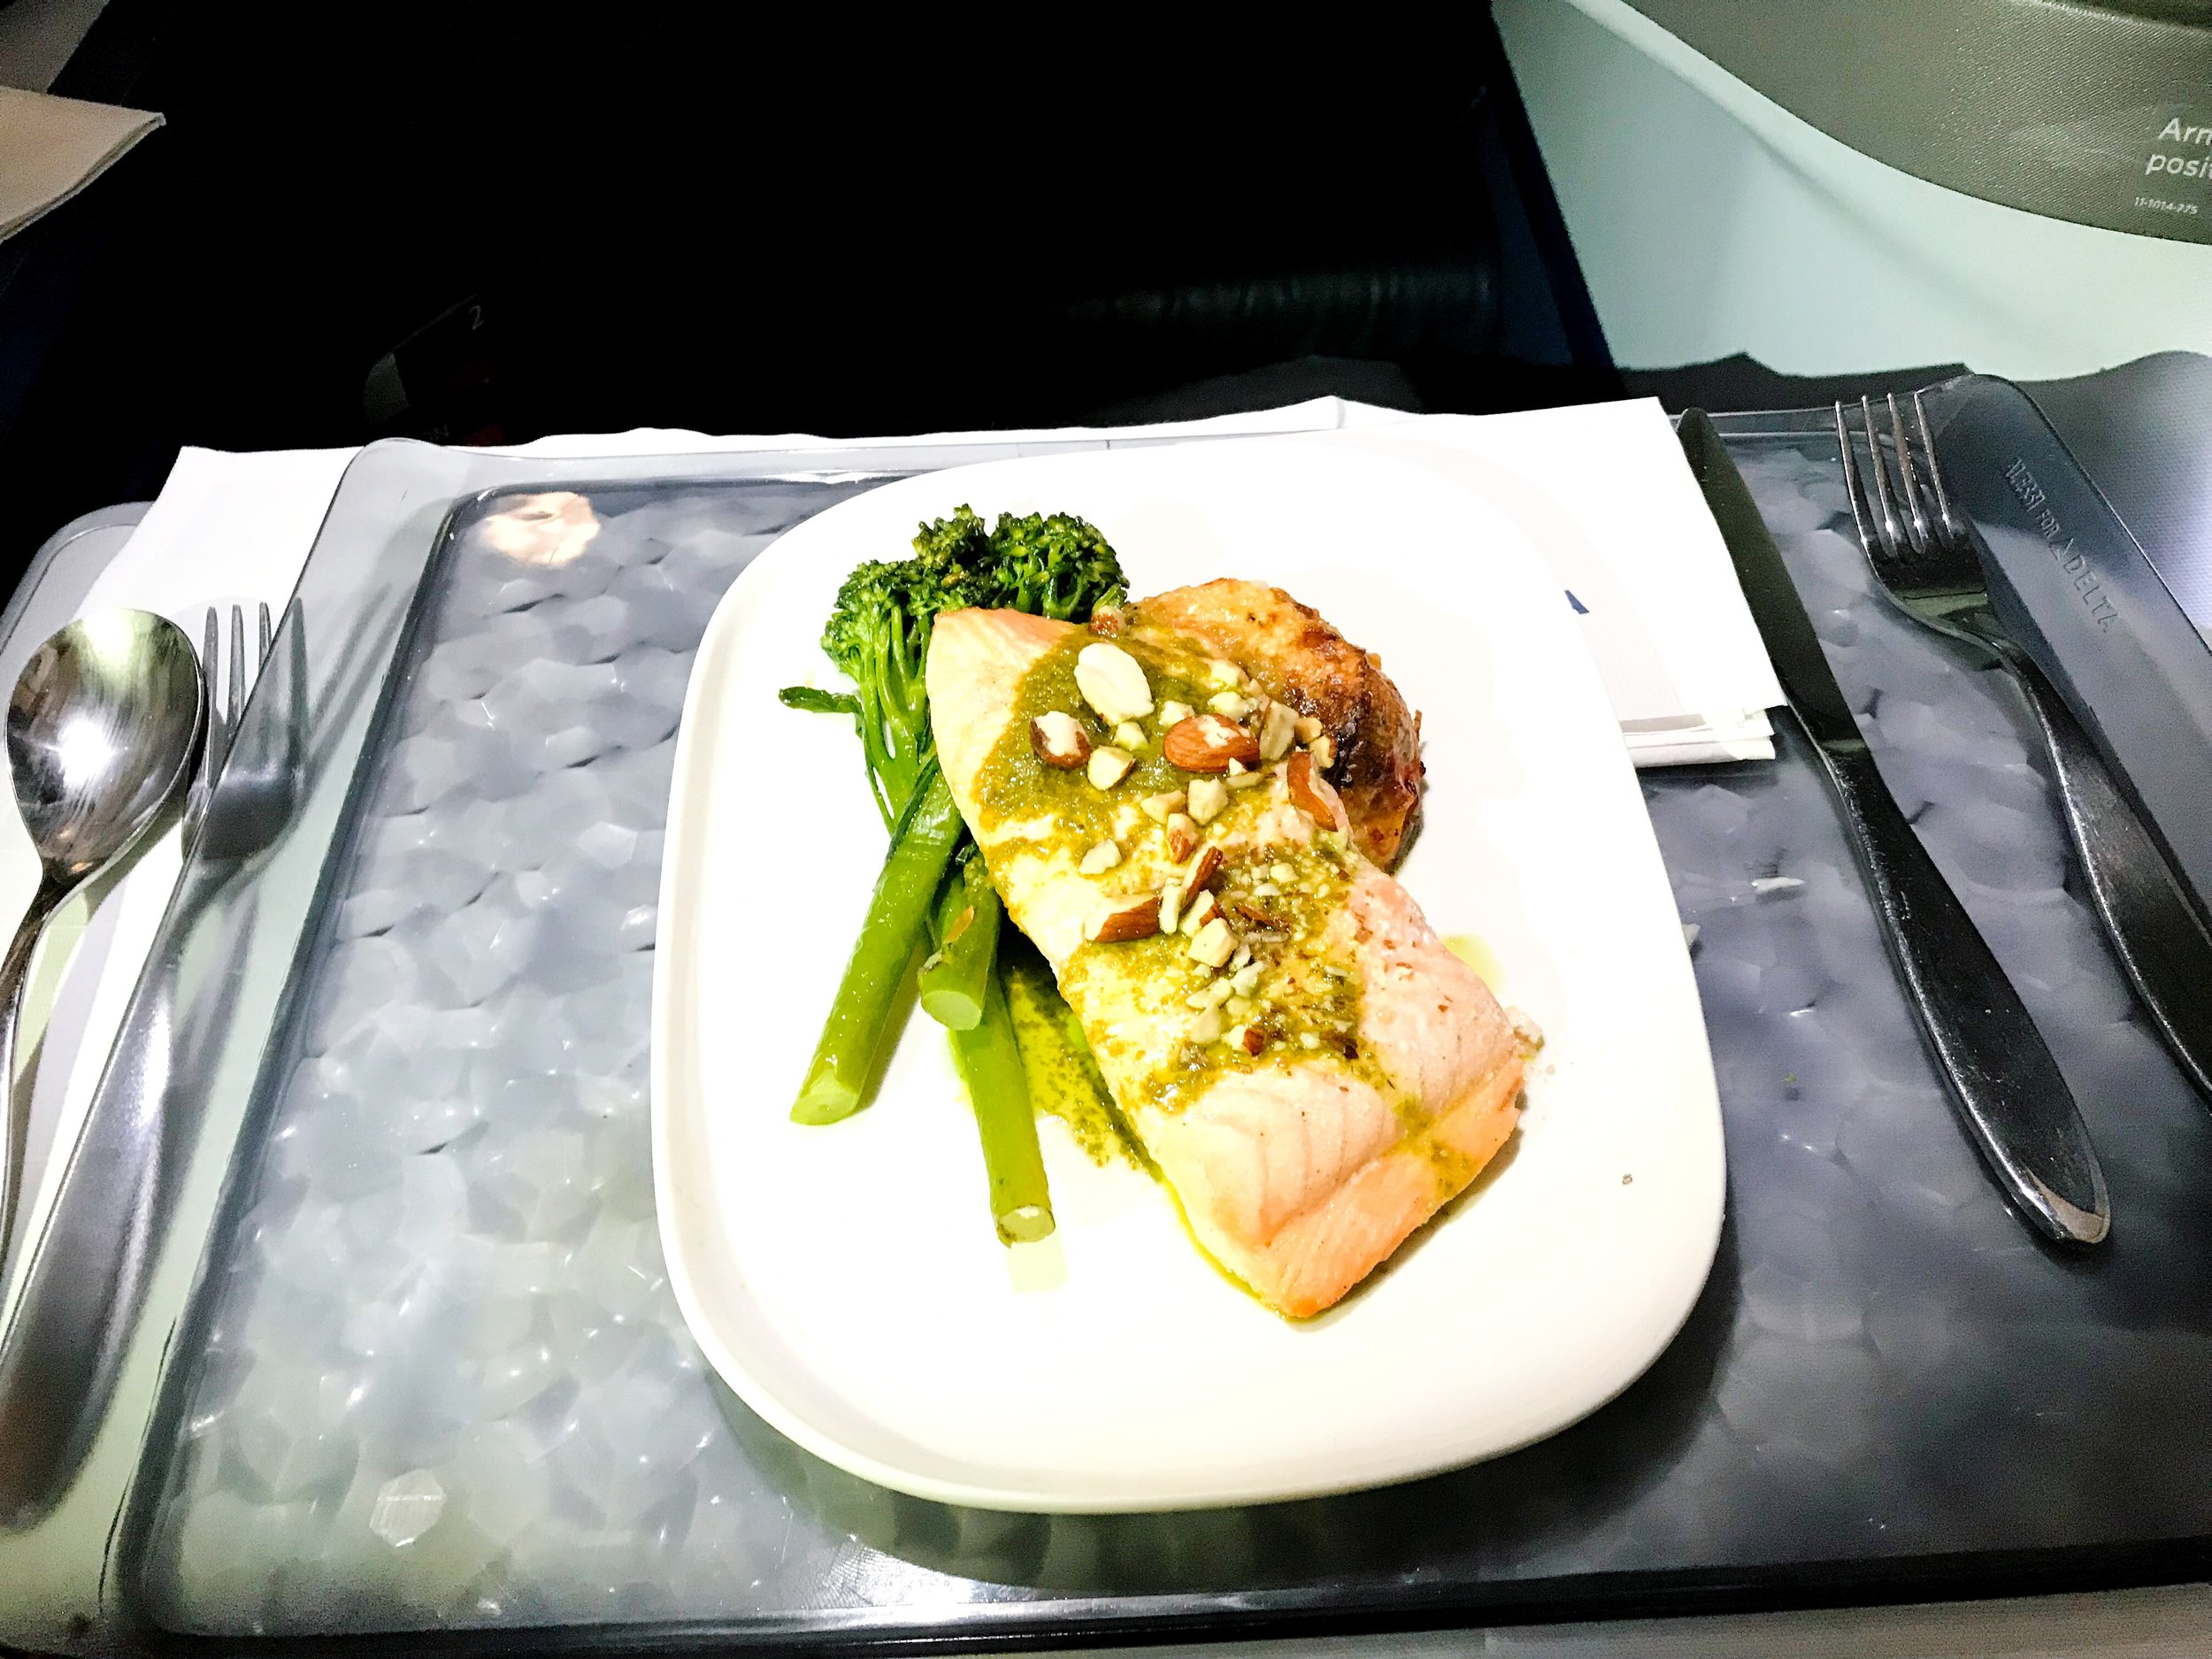 The main course was a salmon filet over a bed of rice and vegetables. The salmon was very moist and not dried out, which is a common occurrence on flights.